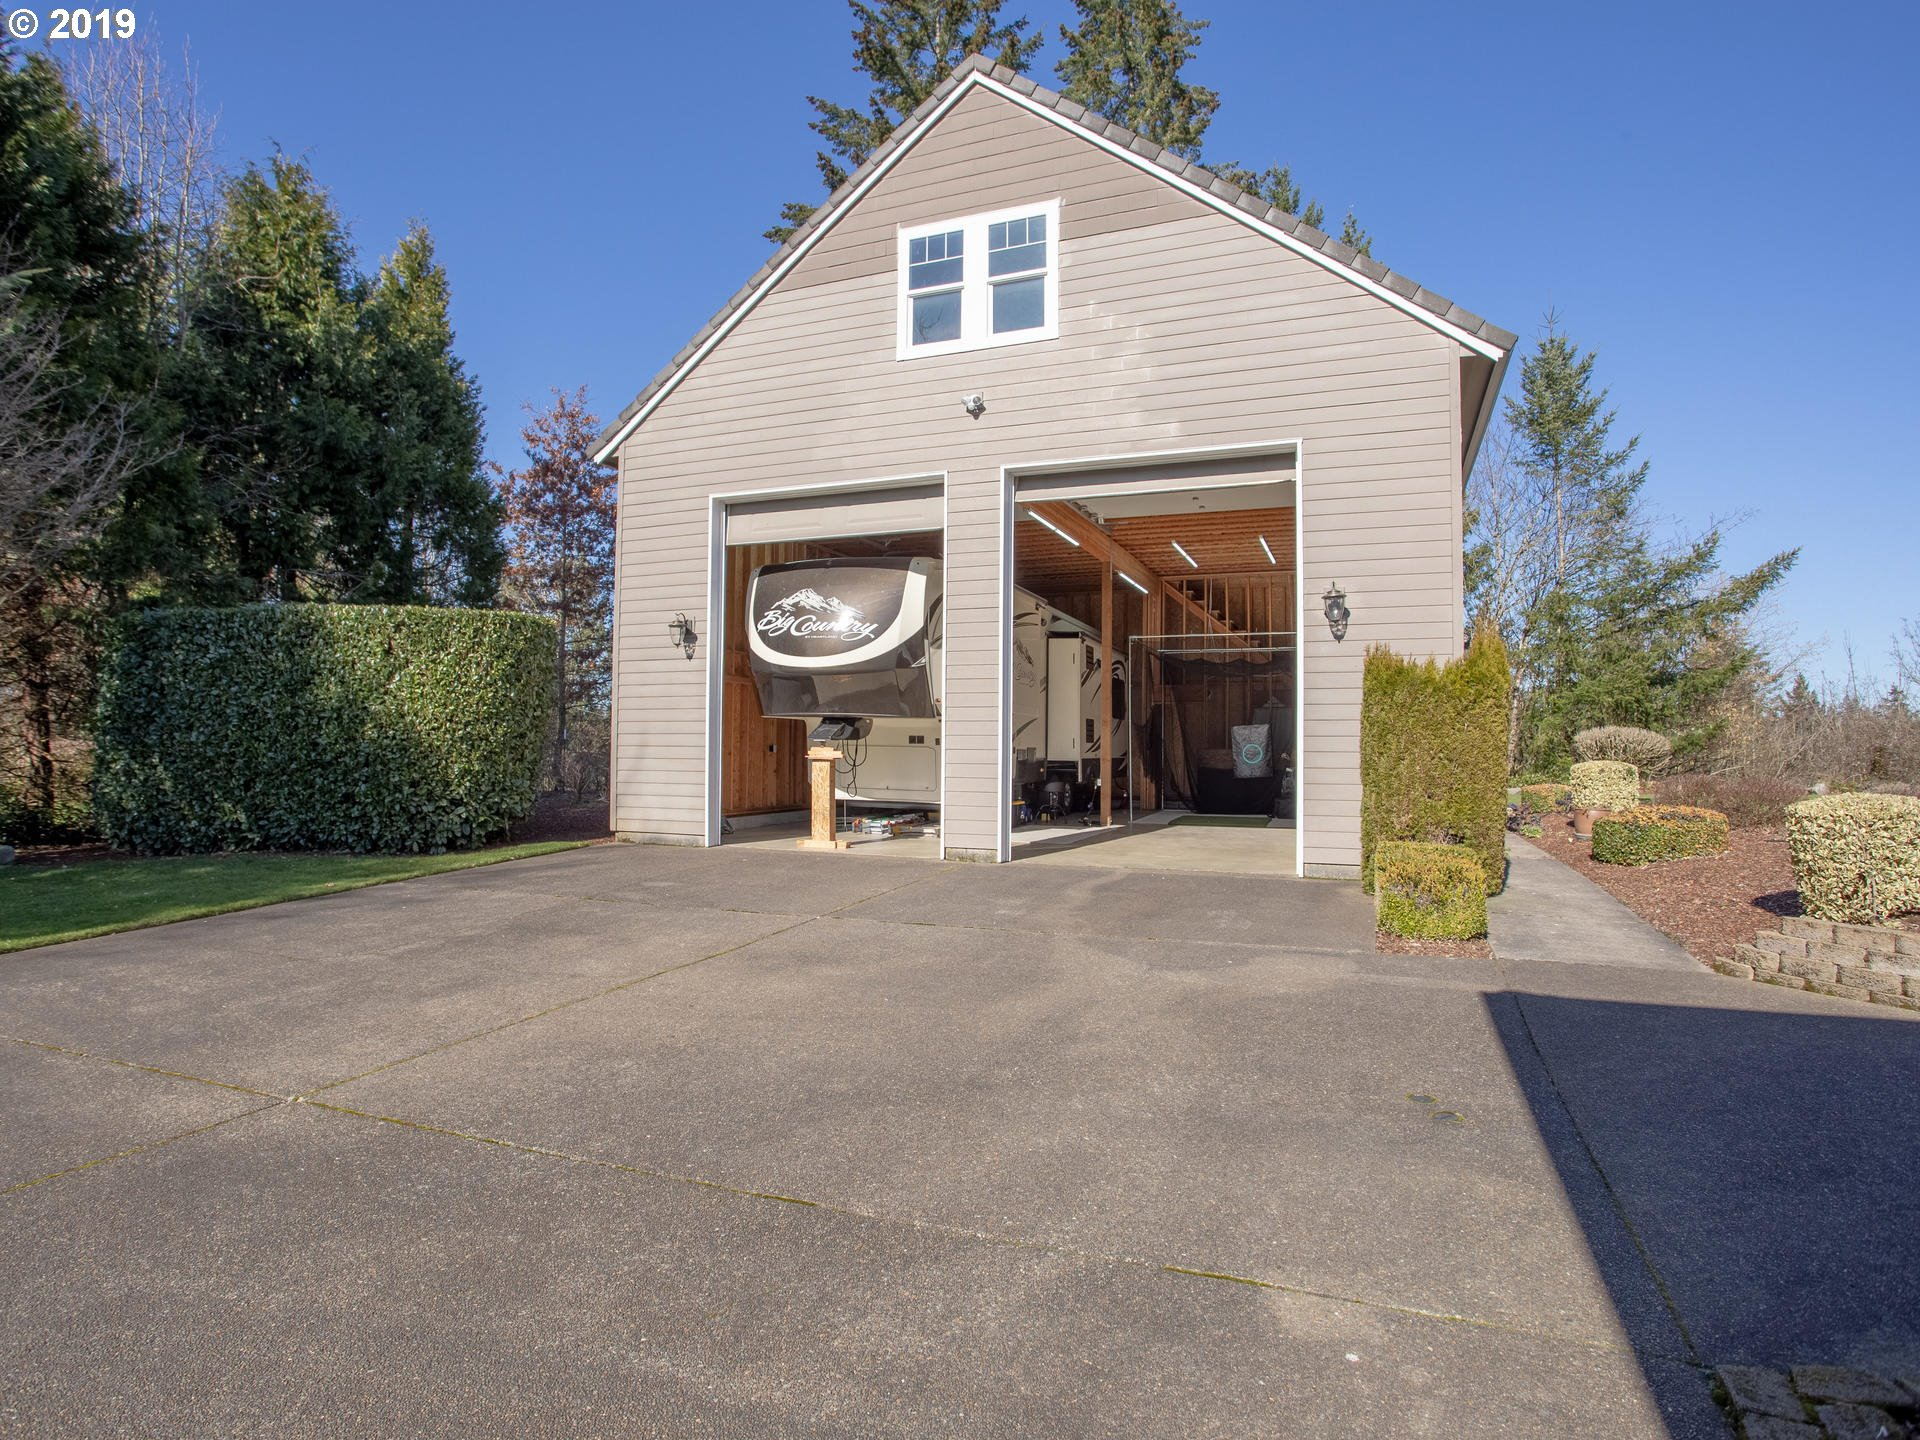 25719 NE 74th Ct, Battle Ground, WA 98604